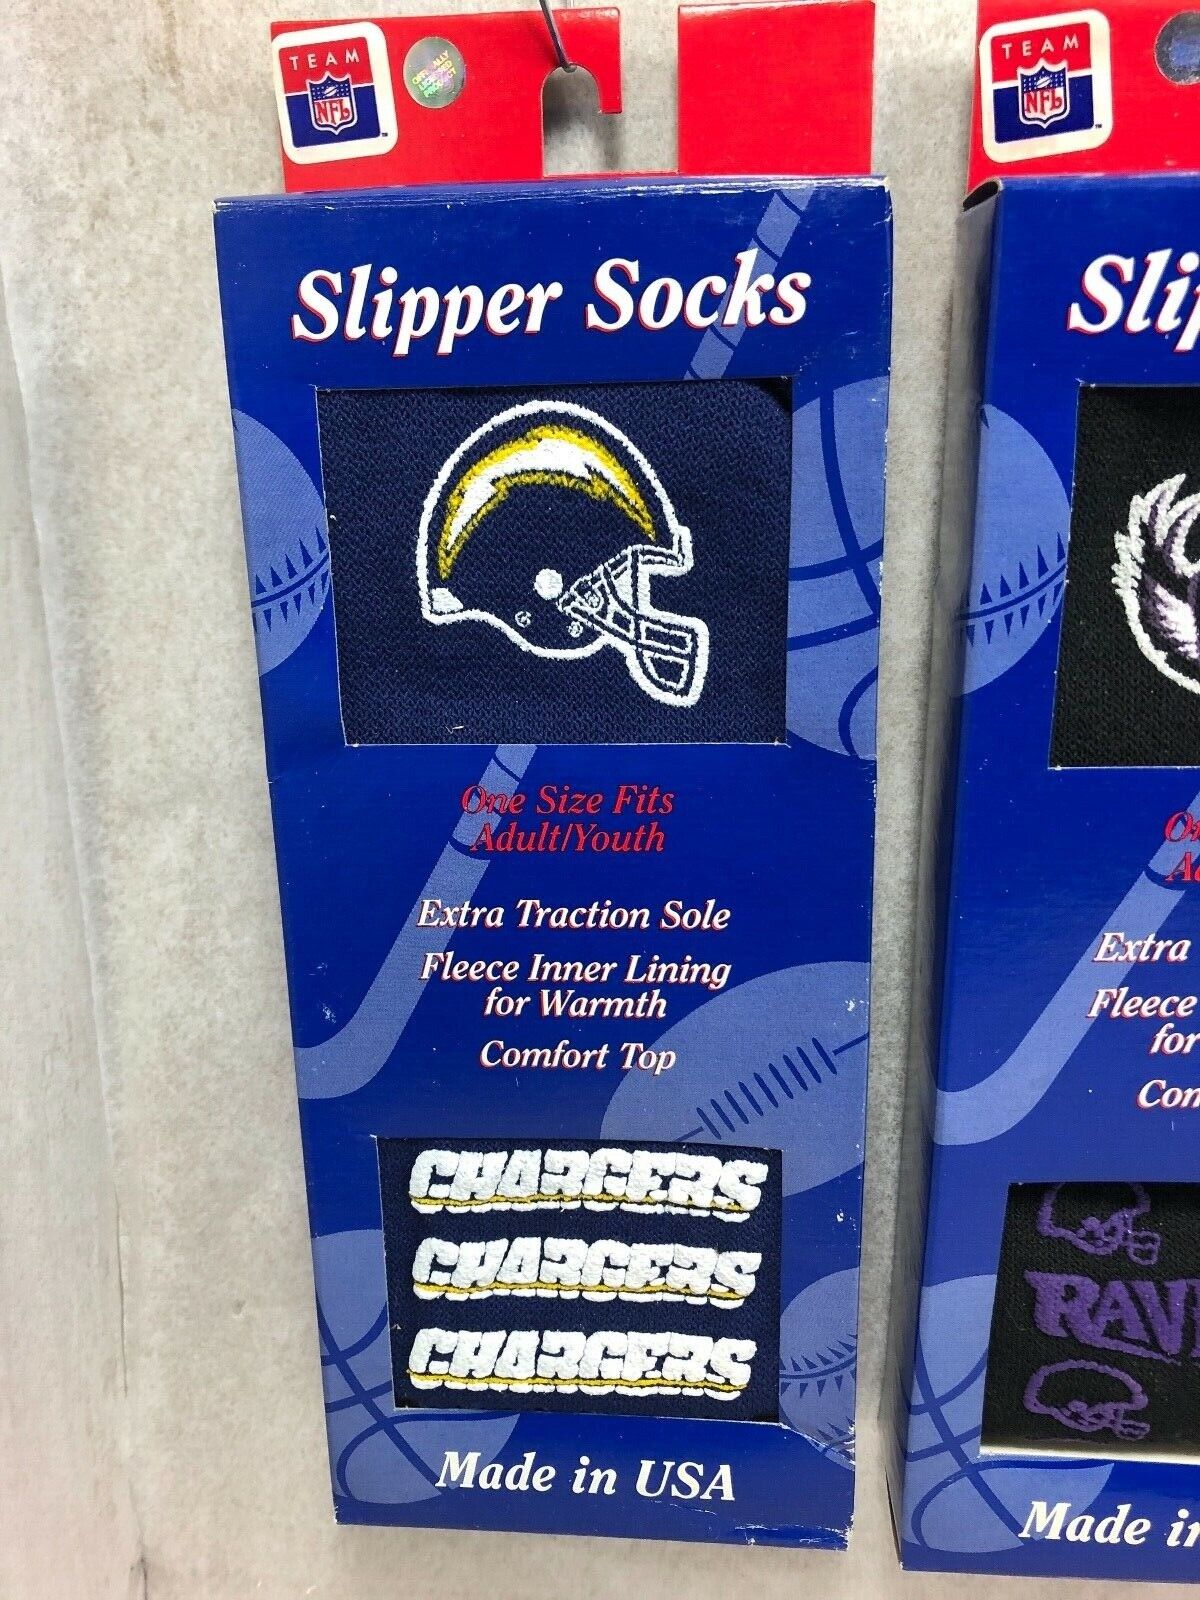 NEW MENS NFL SLIPPER SOCKS EAGLES, BILLS, CHARGERS,RAVENS ,COWBOYS MADE IN USA Fan Apparel & Souvenirs